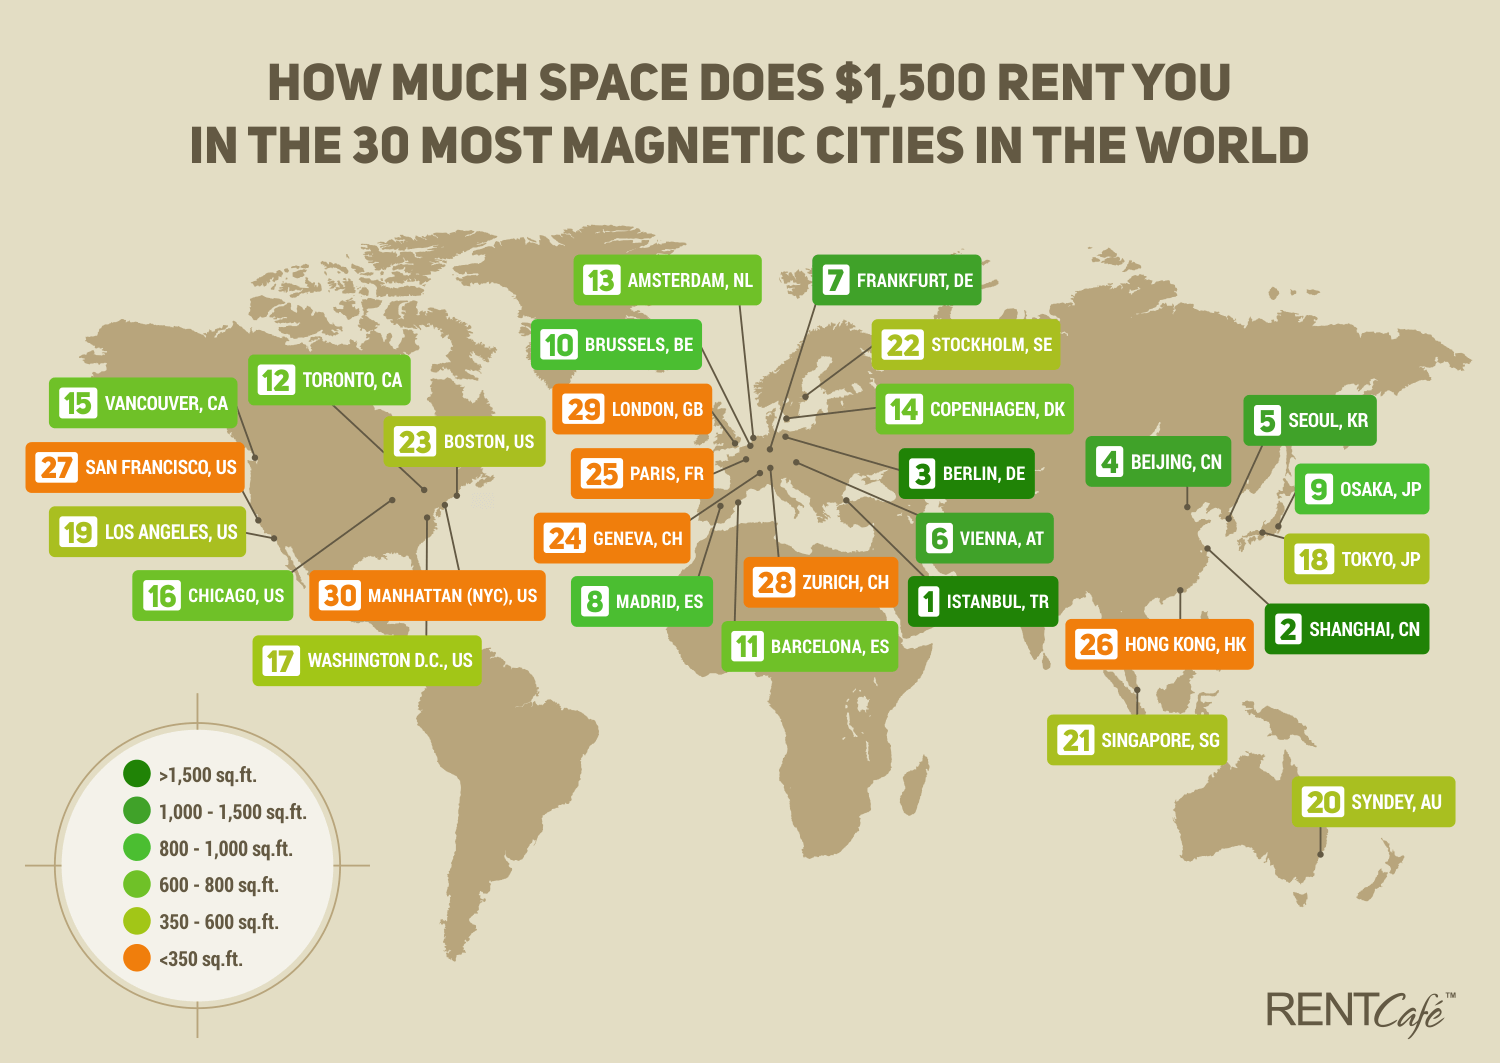 How Much Space Does $1,500 Rent You in the 30 Most Magnetic Cities in the World?